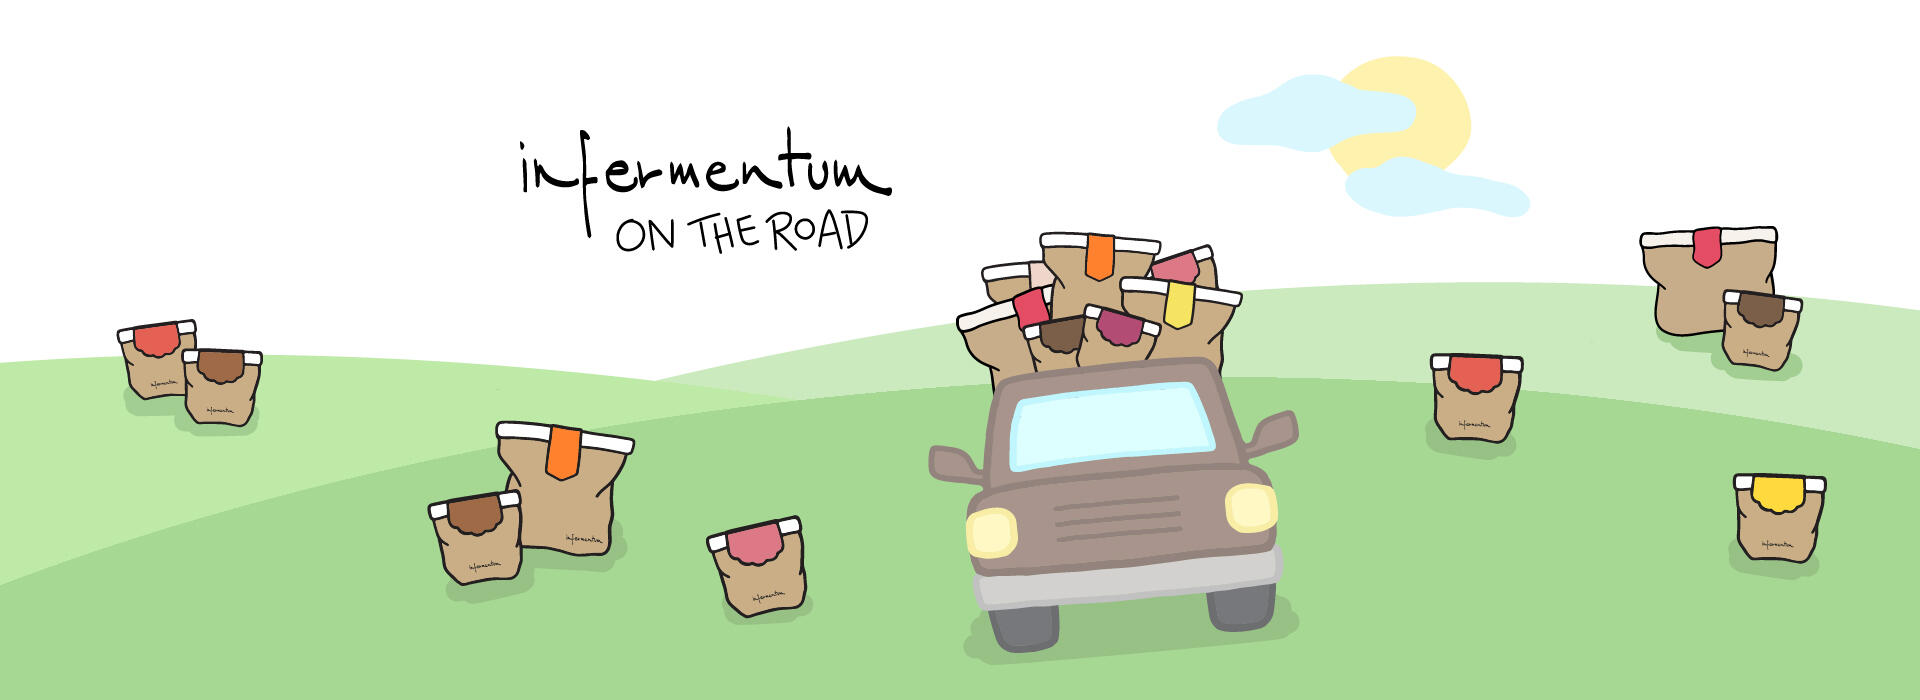 Infermentum on the road 2021